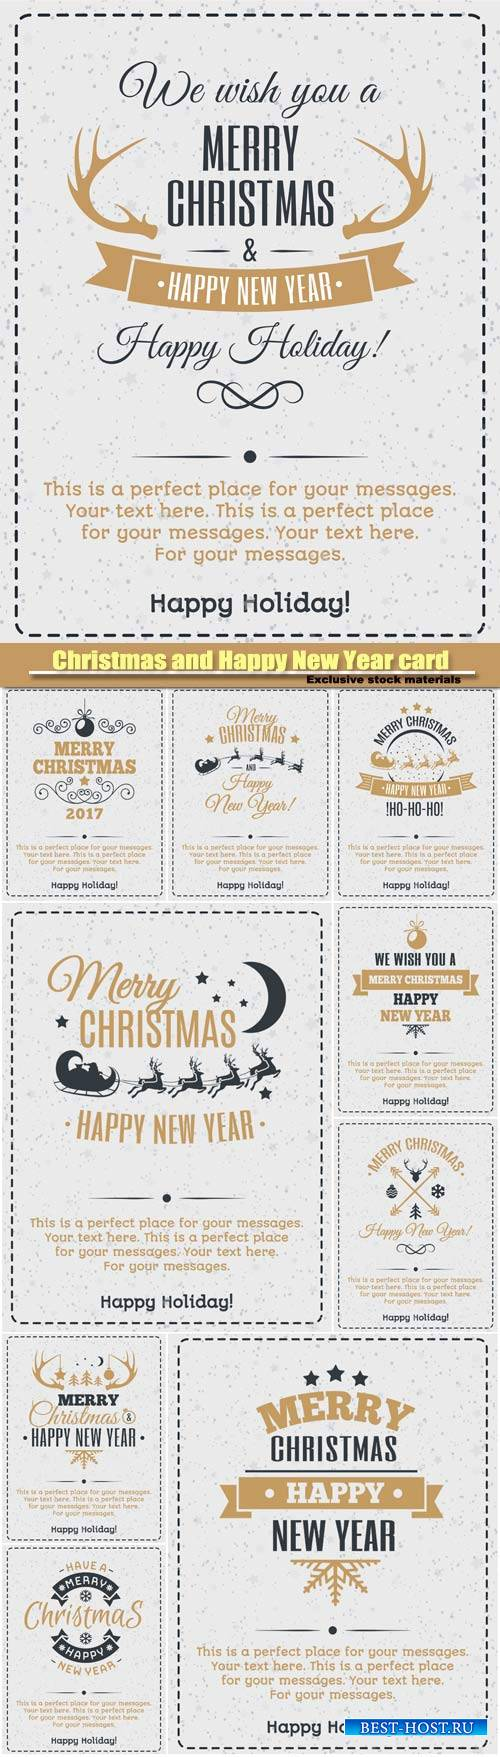 Christmas and Happy New Year card, gold color style, vintage christmas labe ...